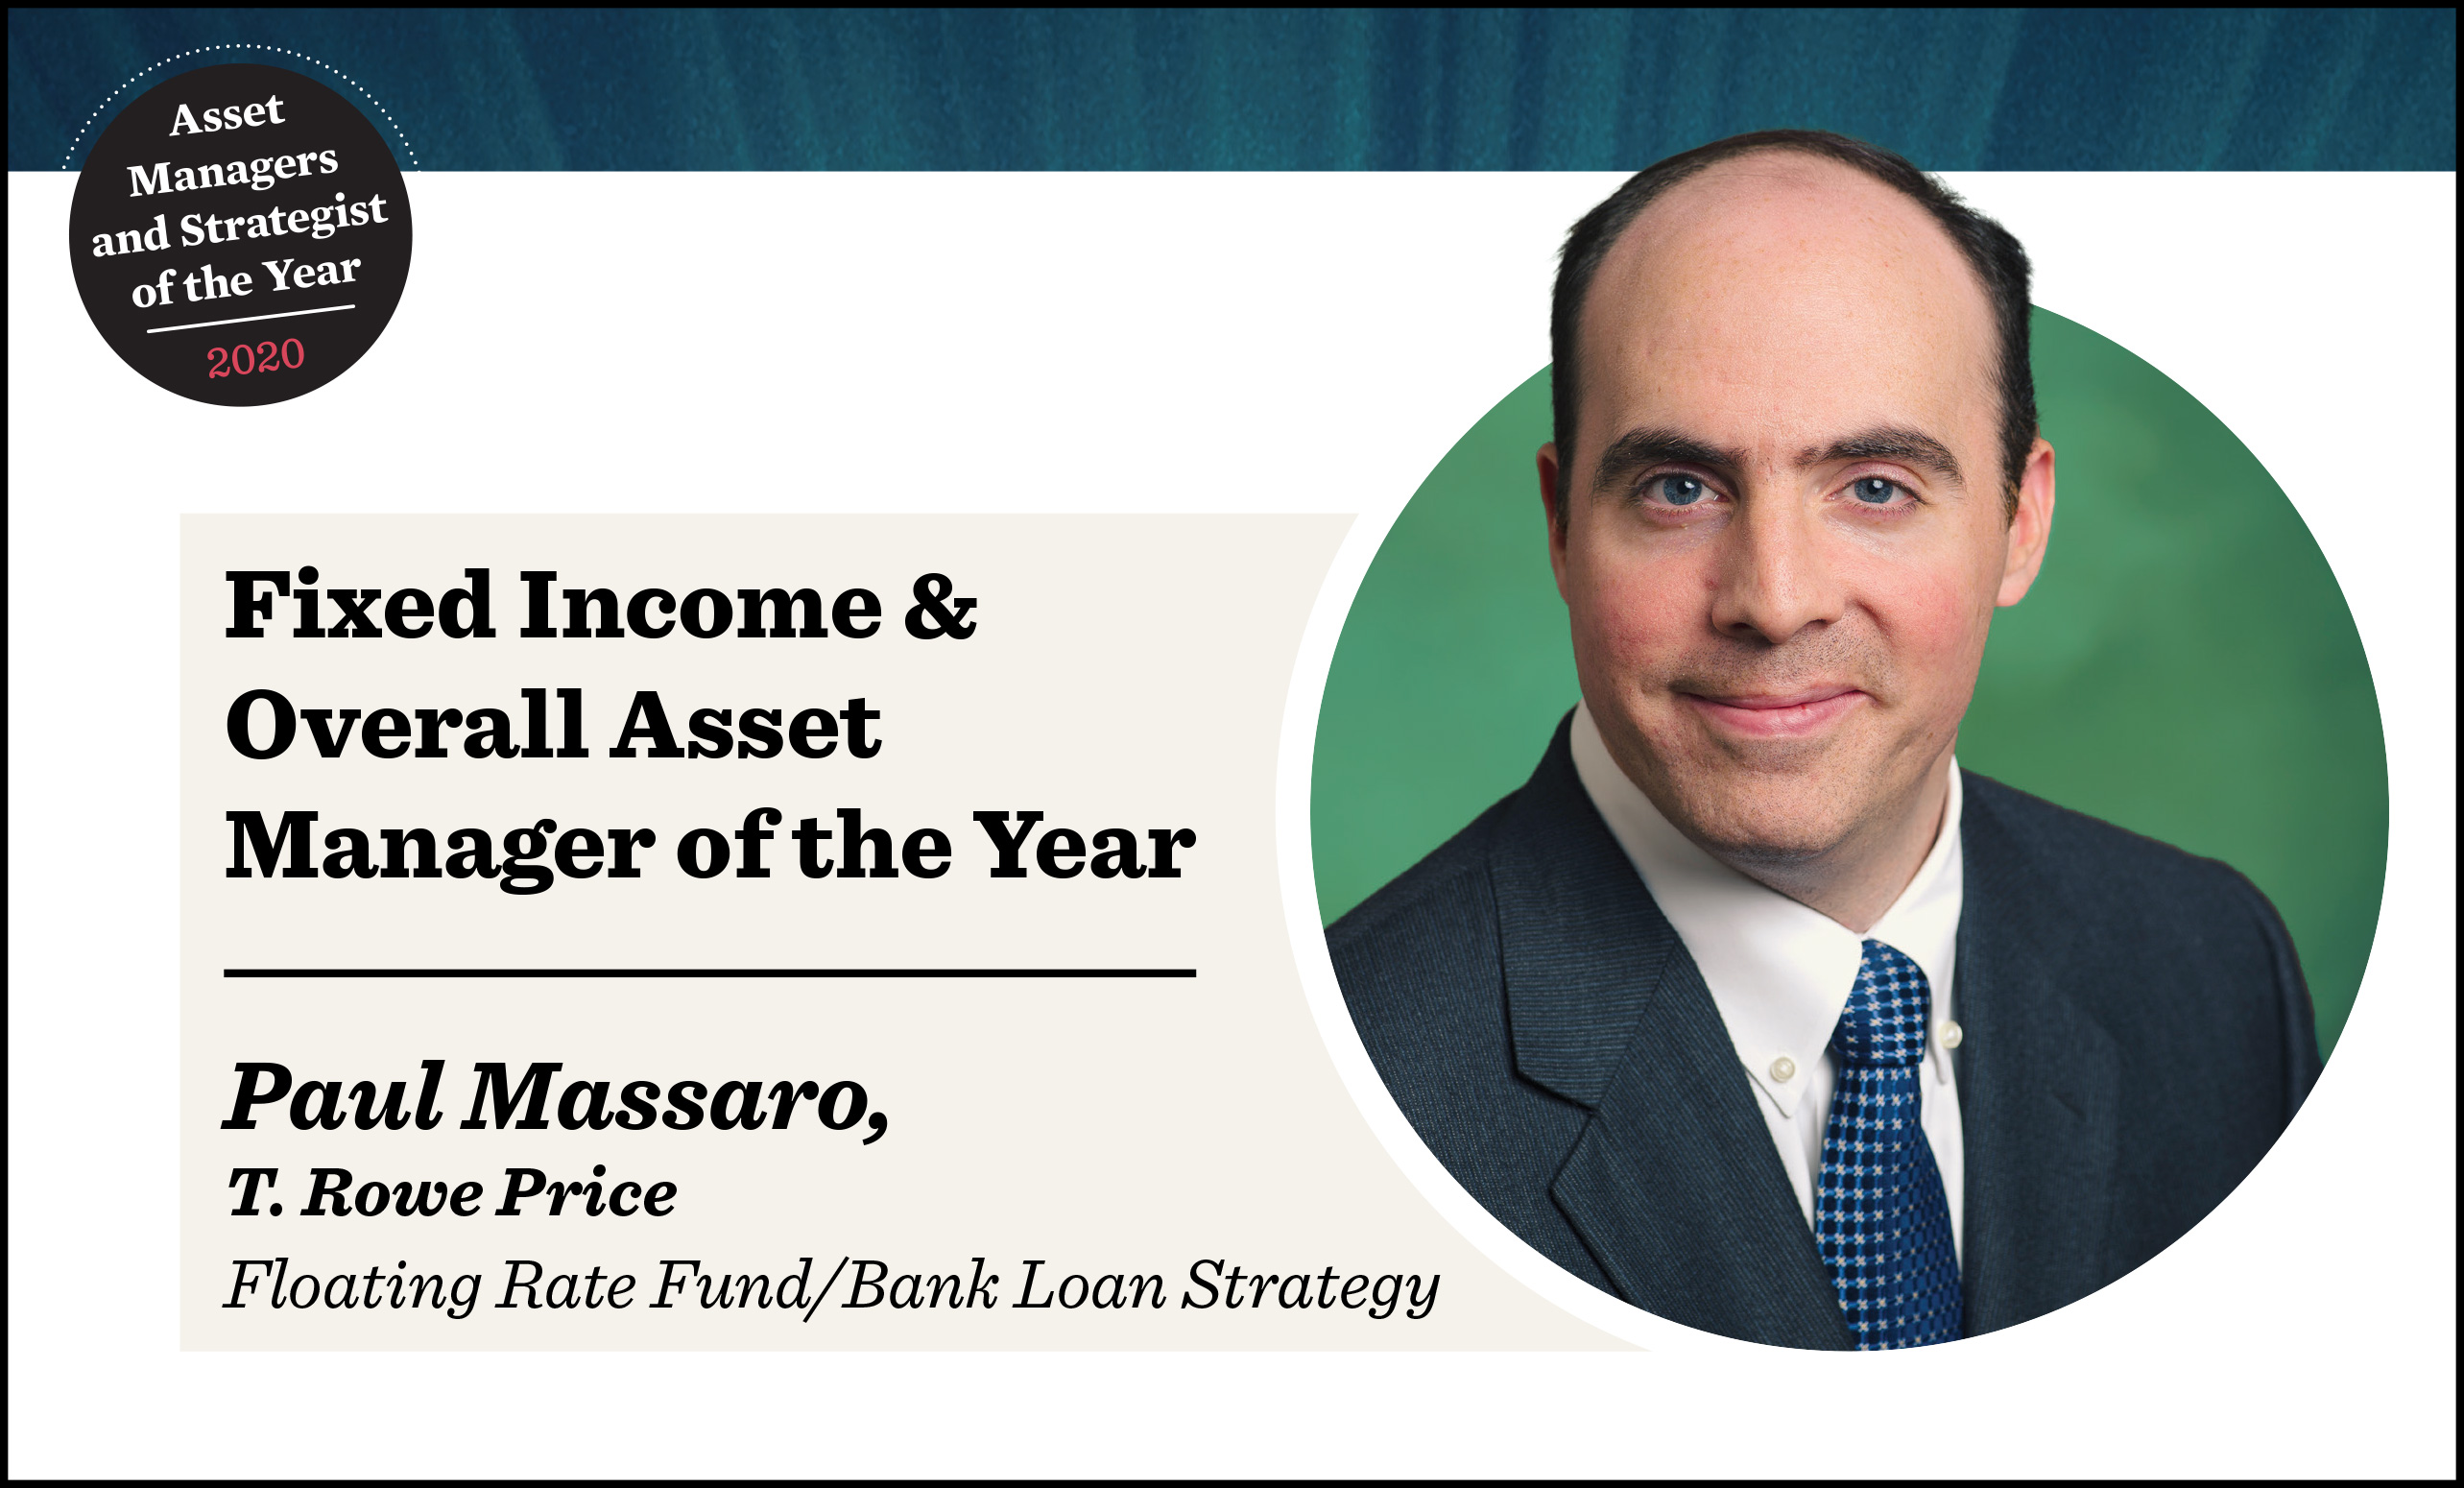 Overall Asset Manager of the Year: T. Rowe Price